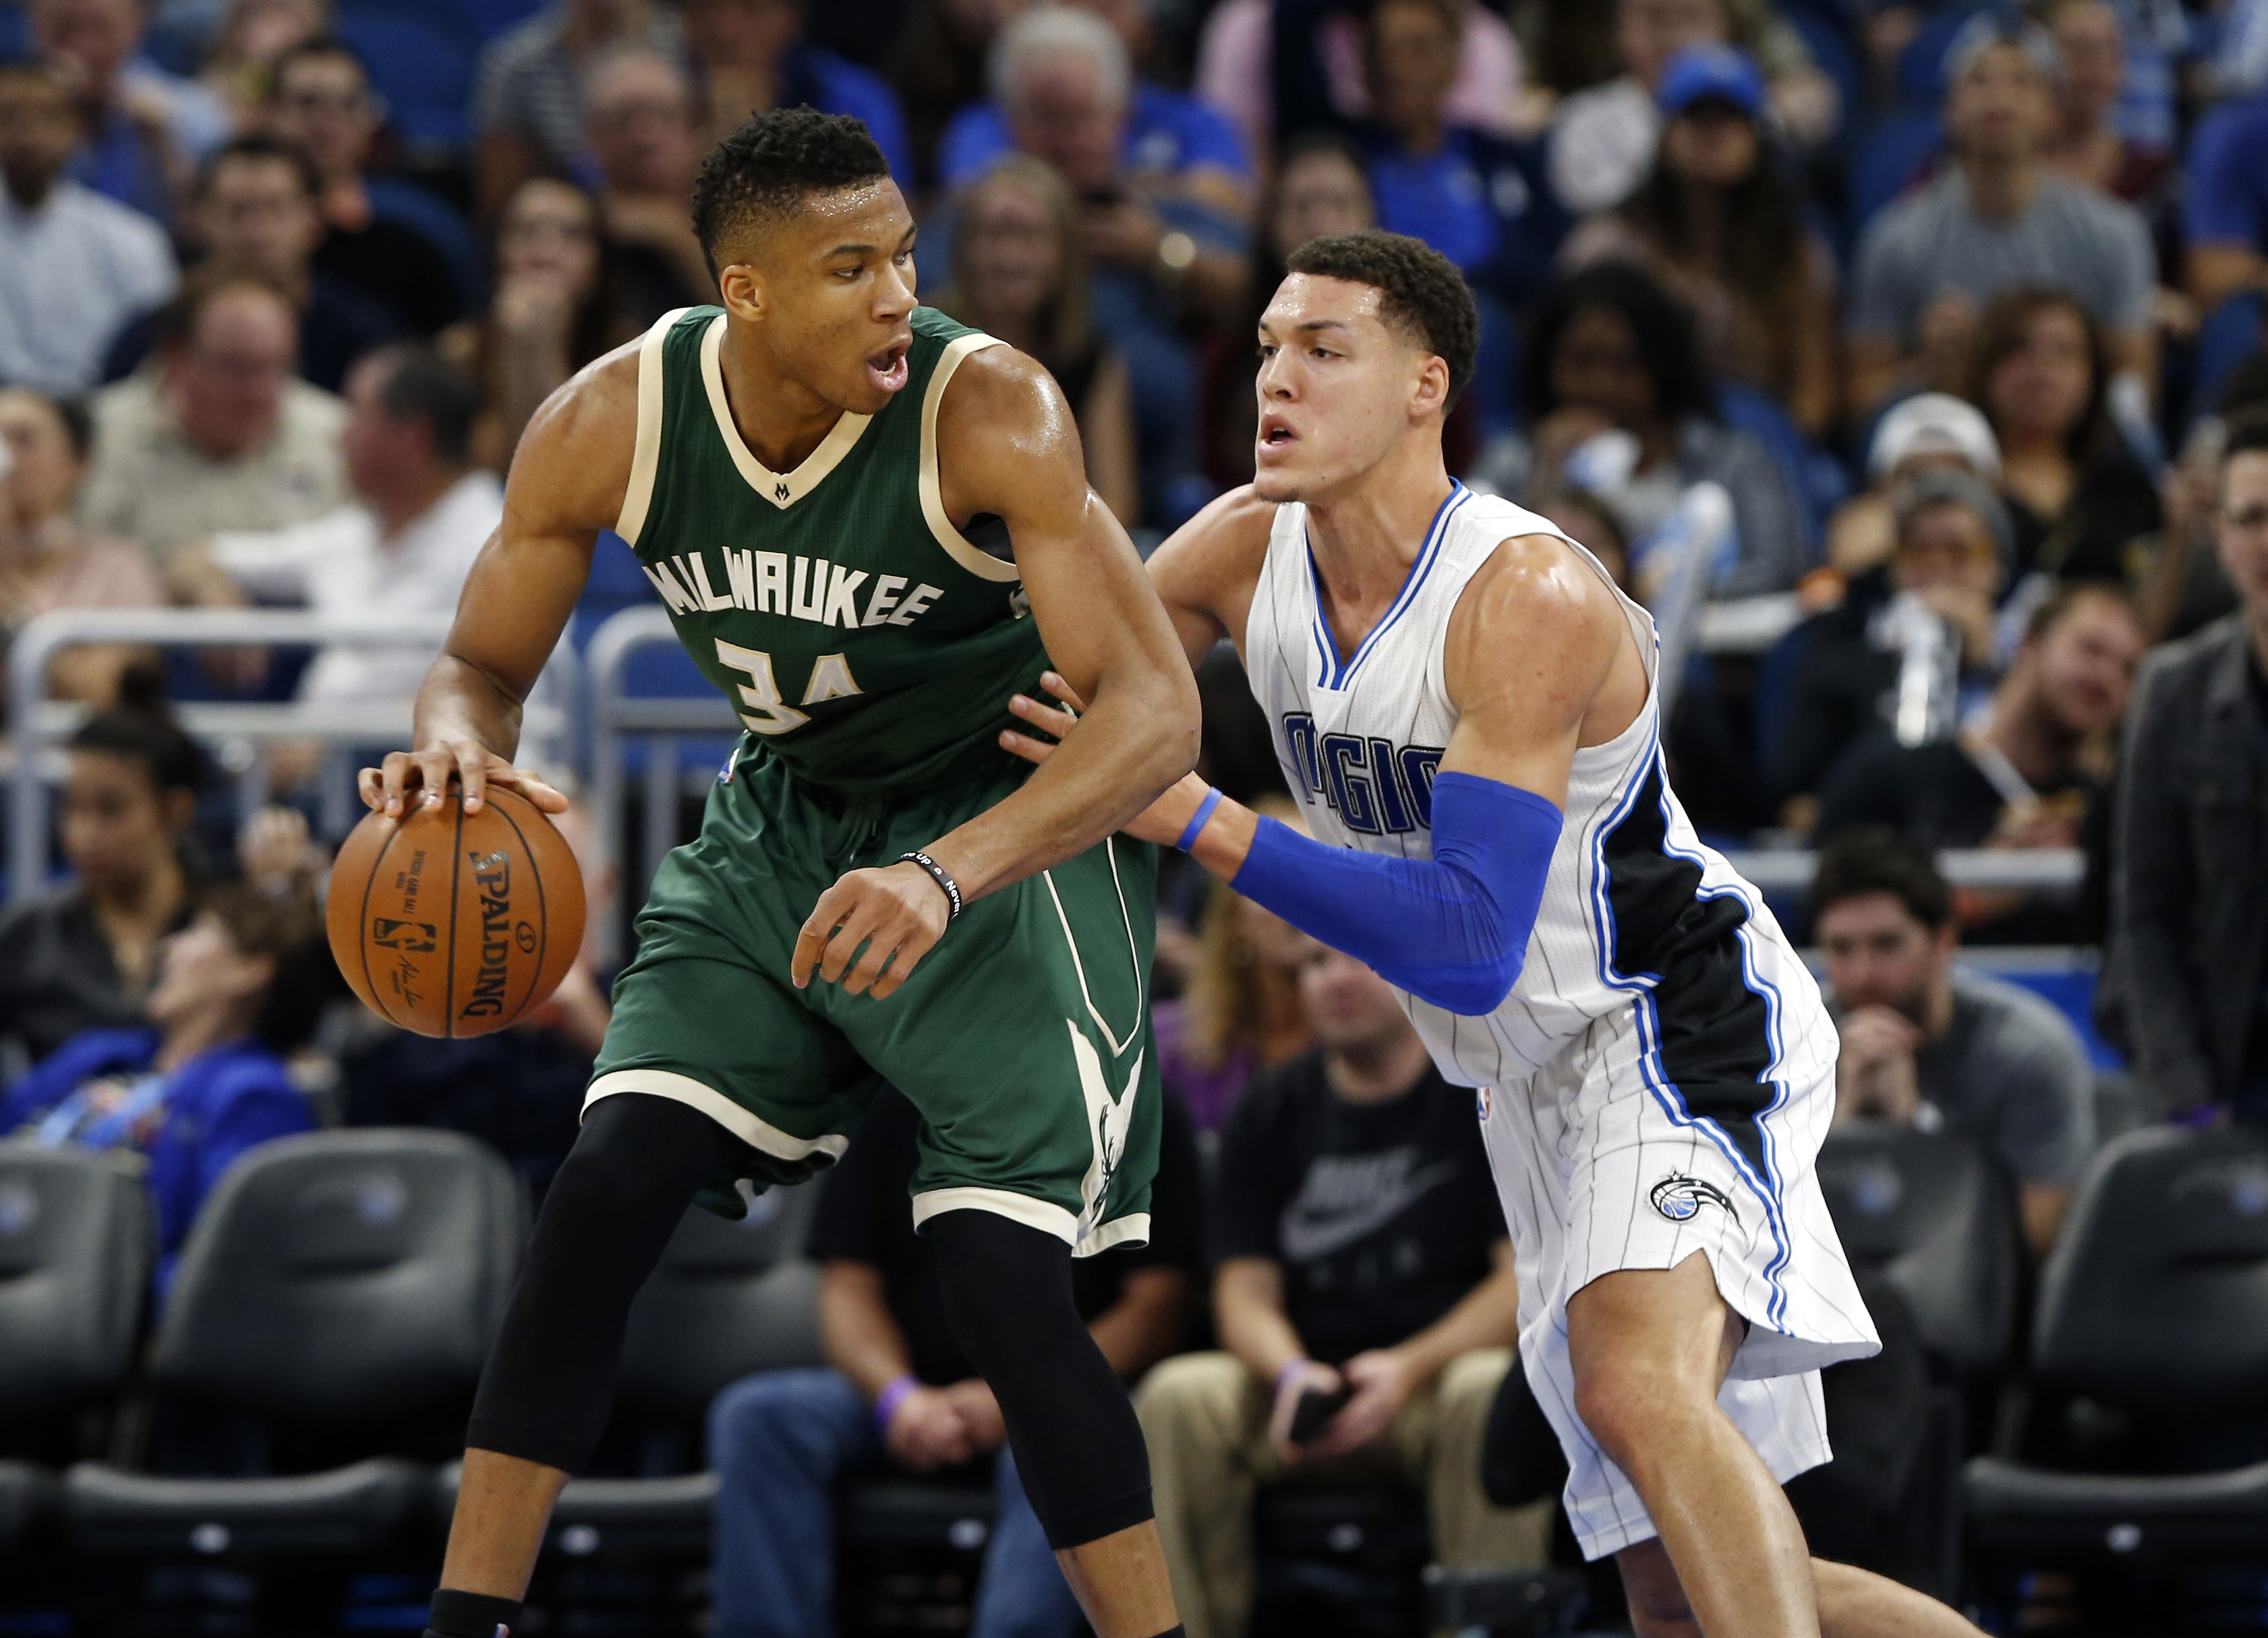 Jan 20, 2017; Orlando, FL, USA;Milwaukee Bucks forward Giannis Antetokounmpo (34) drives to the basket as Orlando Magic forward Aaron Gordon (00) defends during the second half at Amway Center. Orlando Magic defeated the Milwaukee Bucks 112-96. Mandatory Credit: Kim Klement-USA TODAY Sports